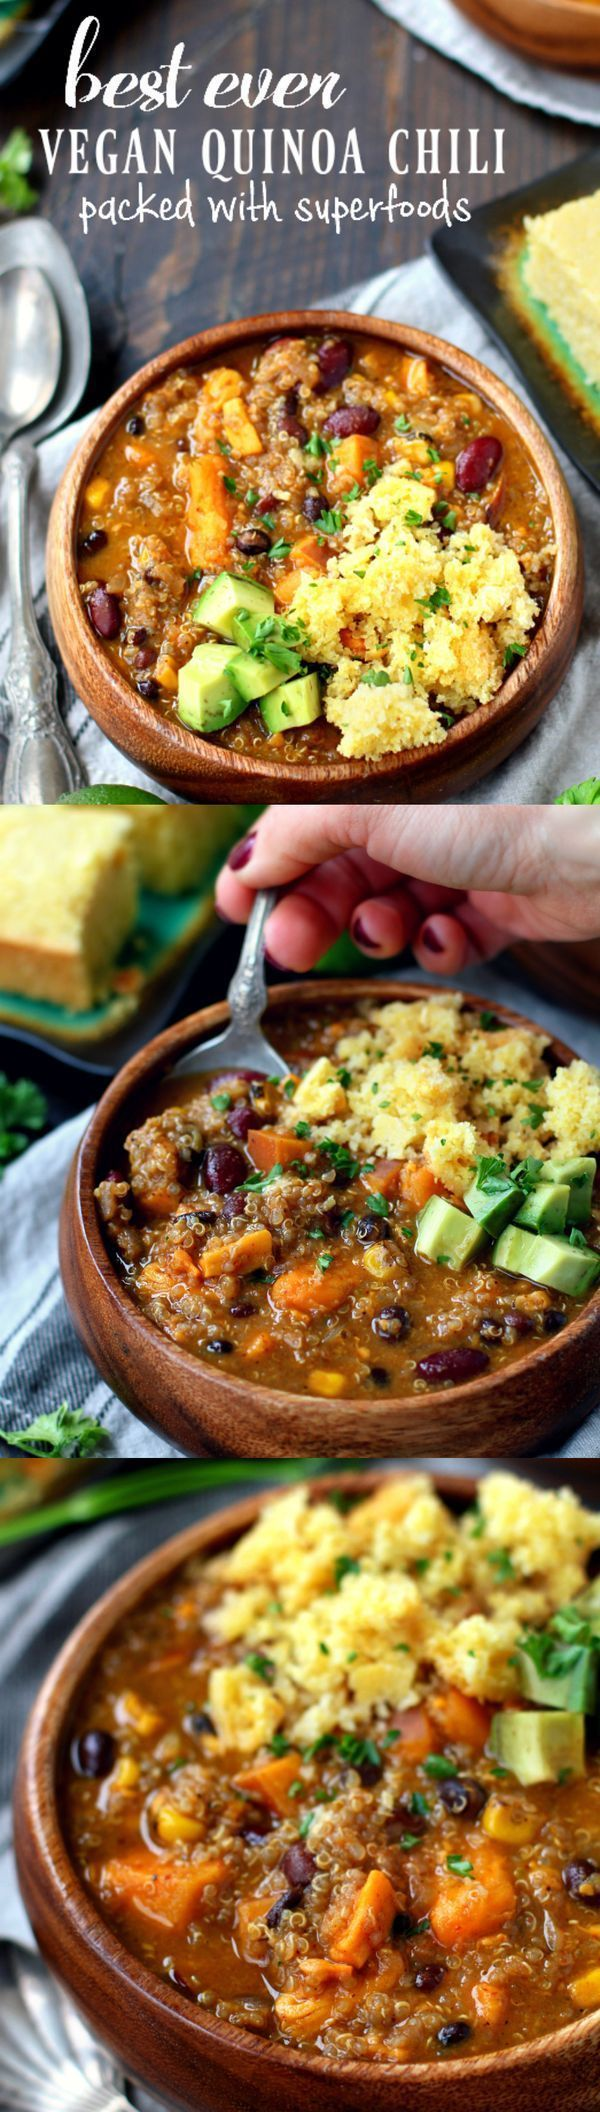 A mouthwatering blend of flavors in the best ever vegan quinoa chili – the perfe…